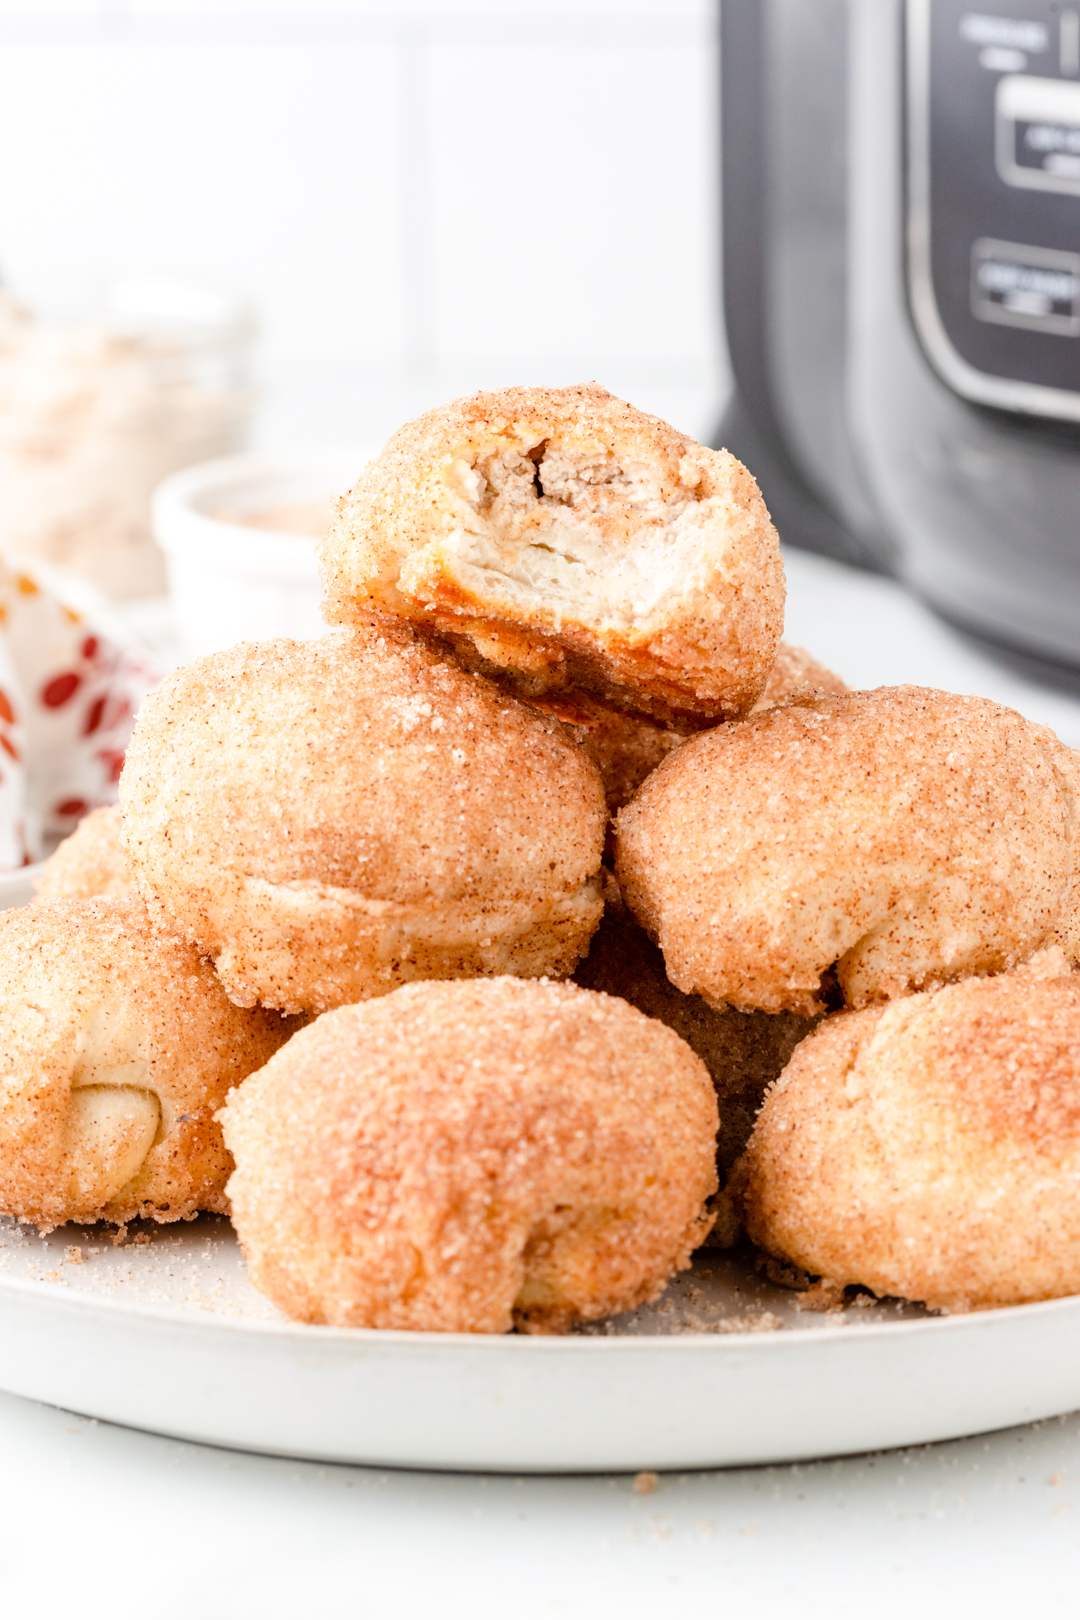 plate of donut bites with one on top with a bite taken out of it